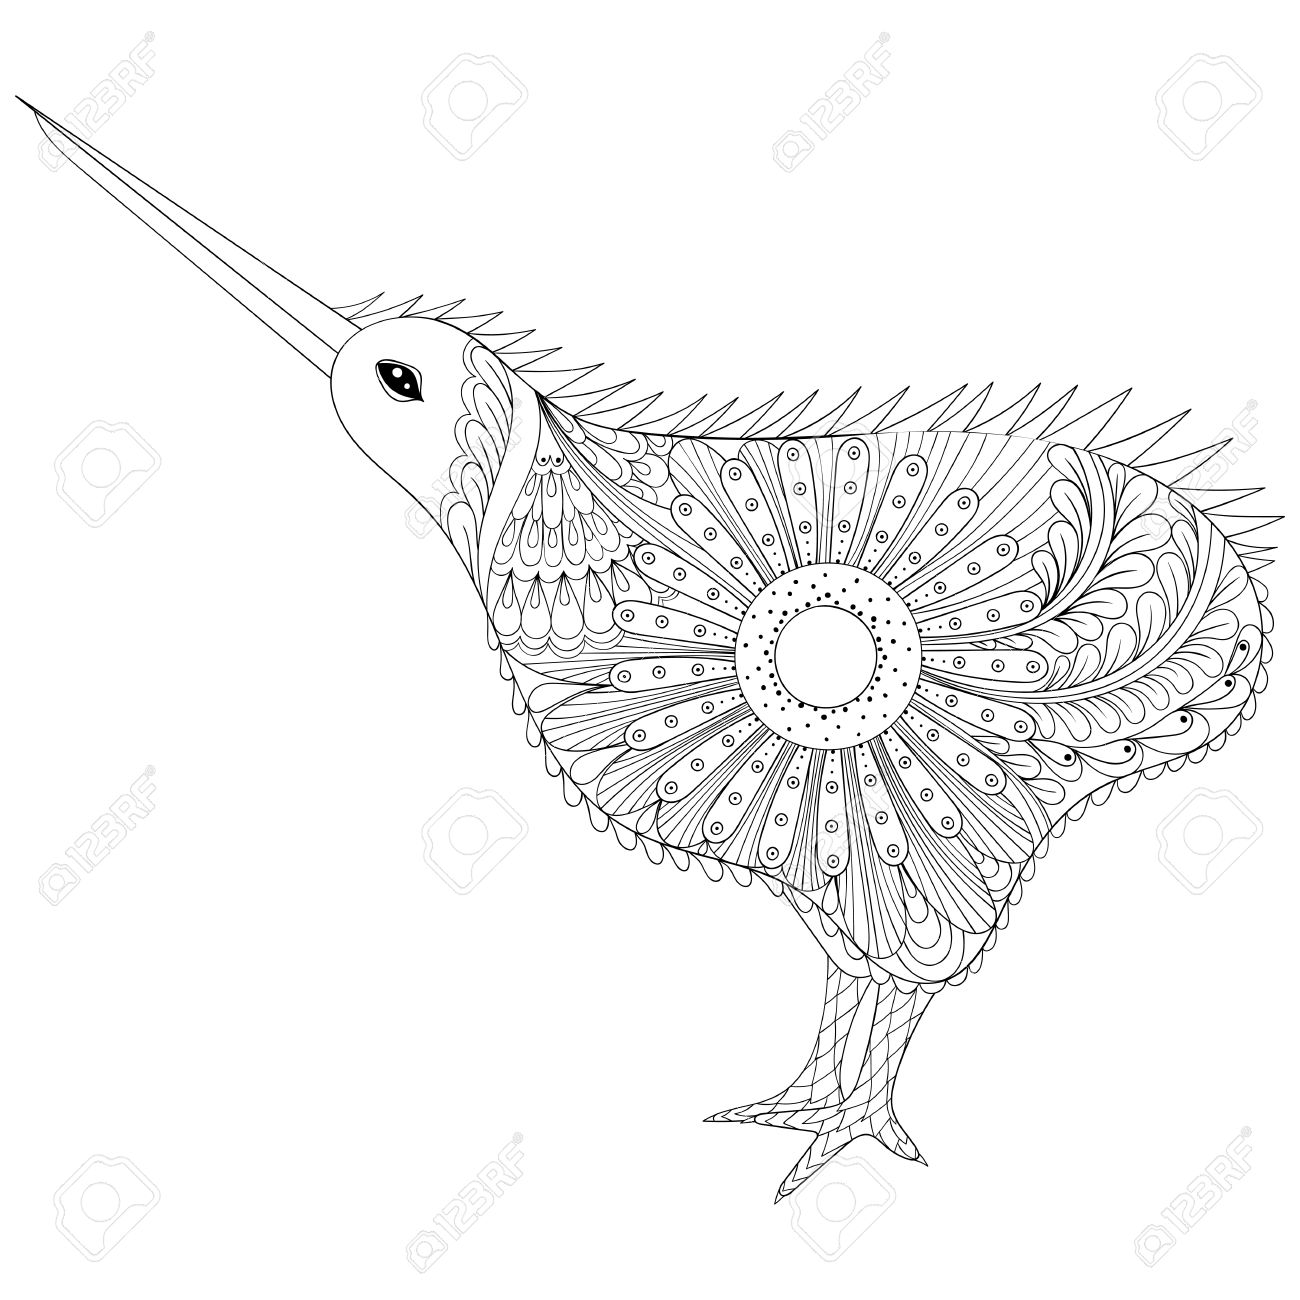 Marvelous Hand Drawn Tribal Kiwi Bird, Symbol Of New Zealand For Adult Anti Stress Coloring  Pages